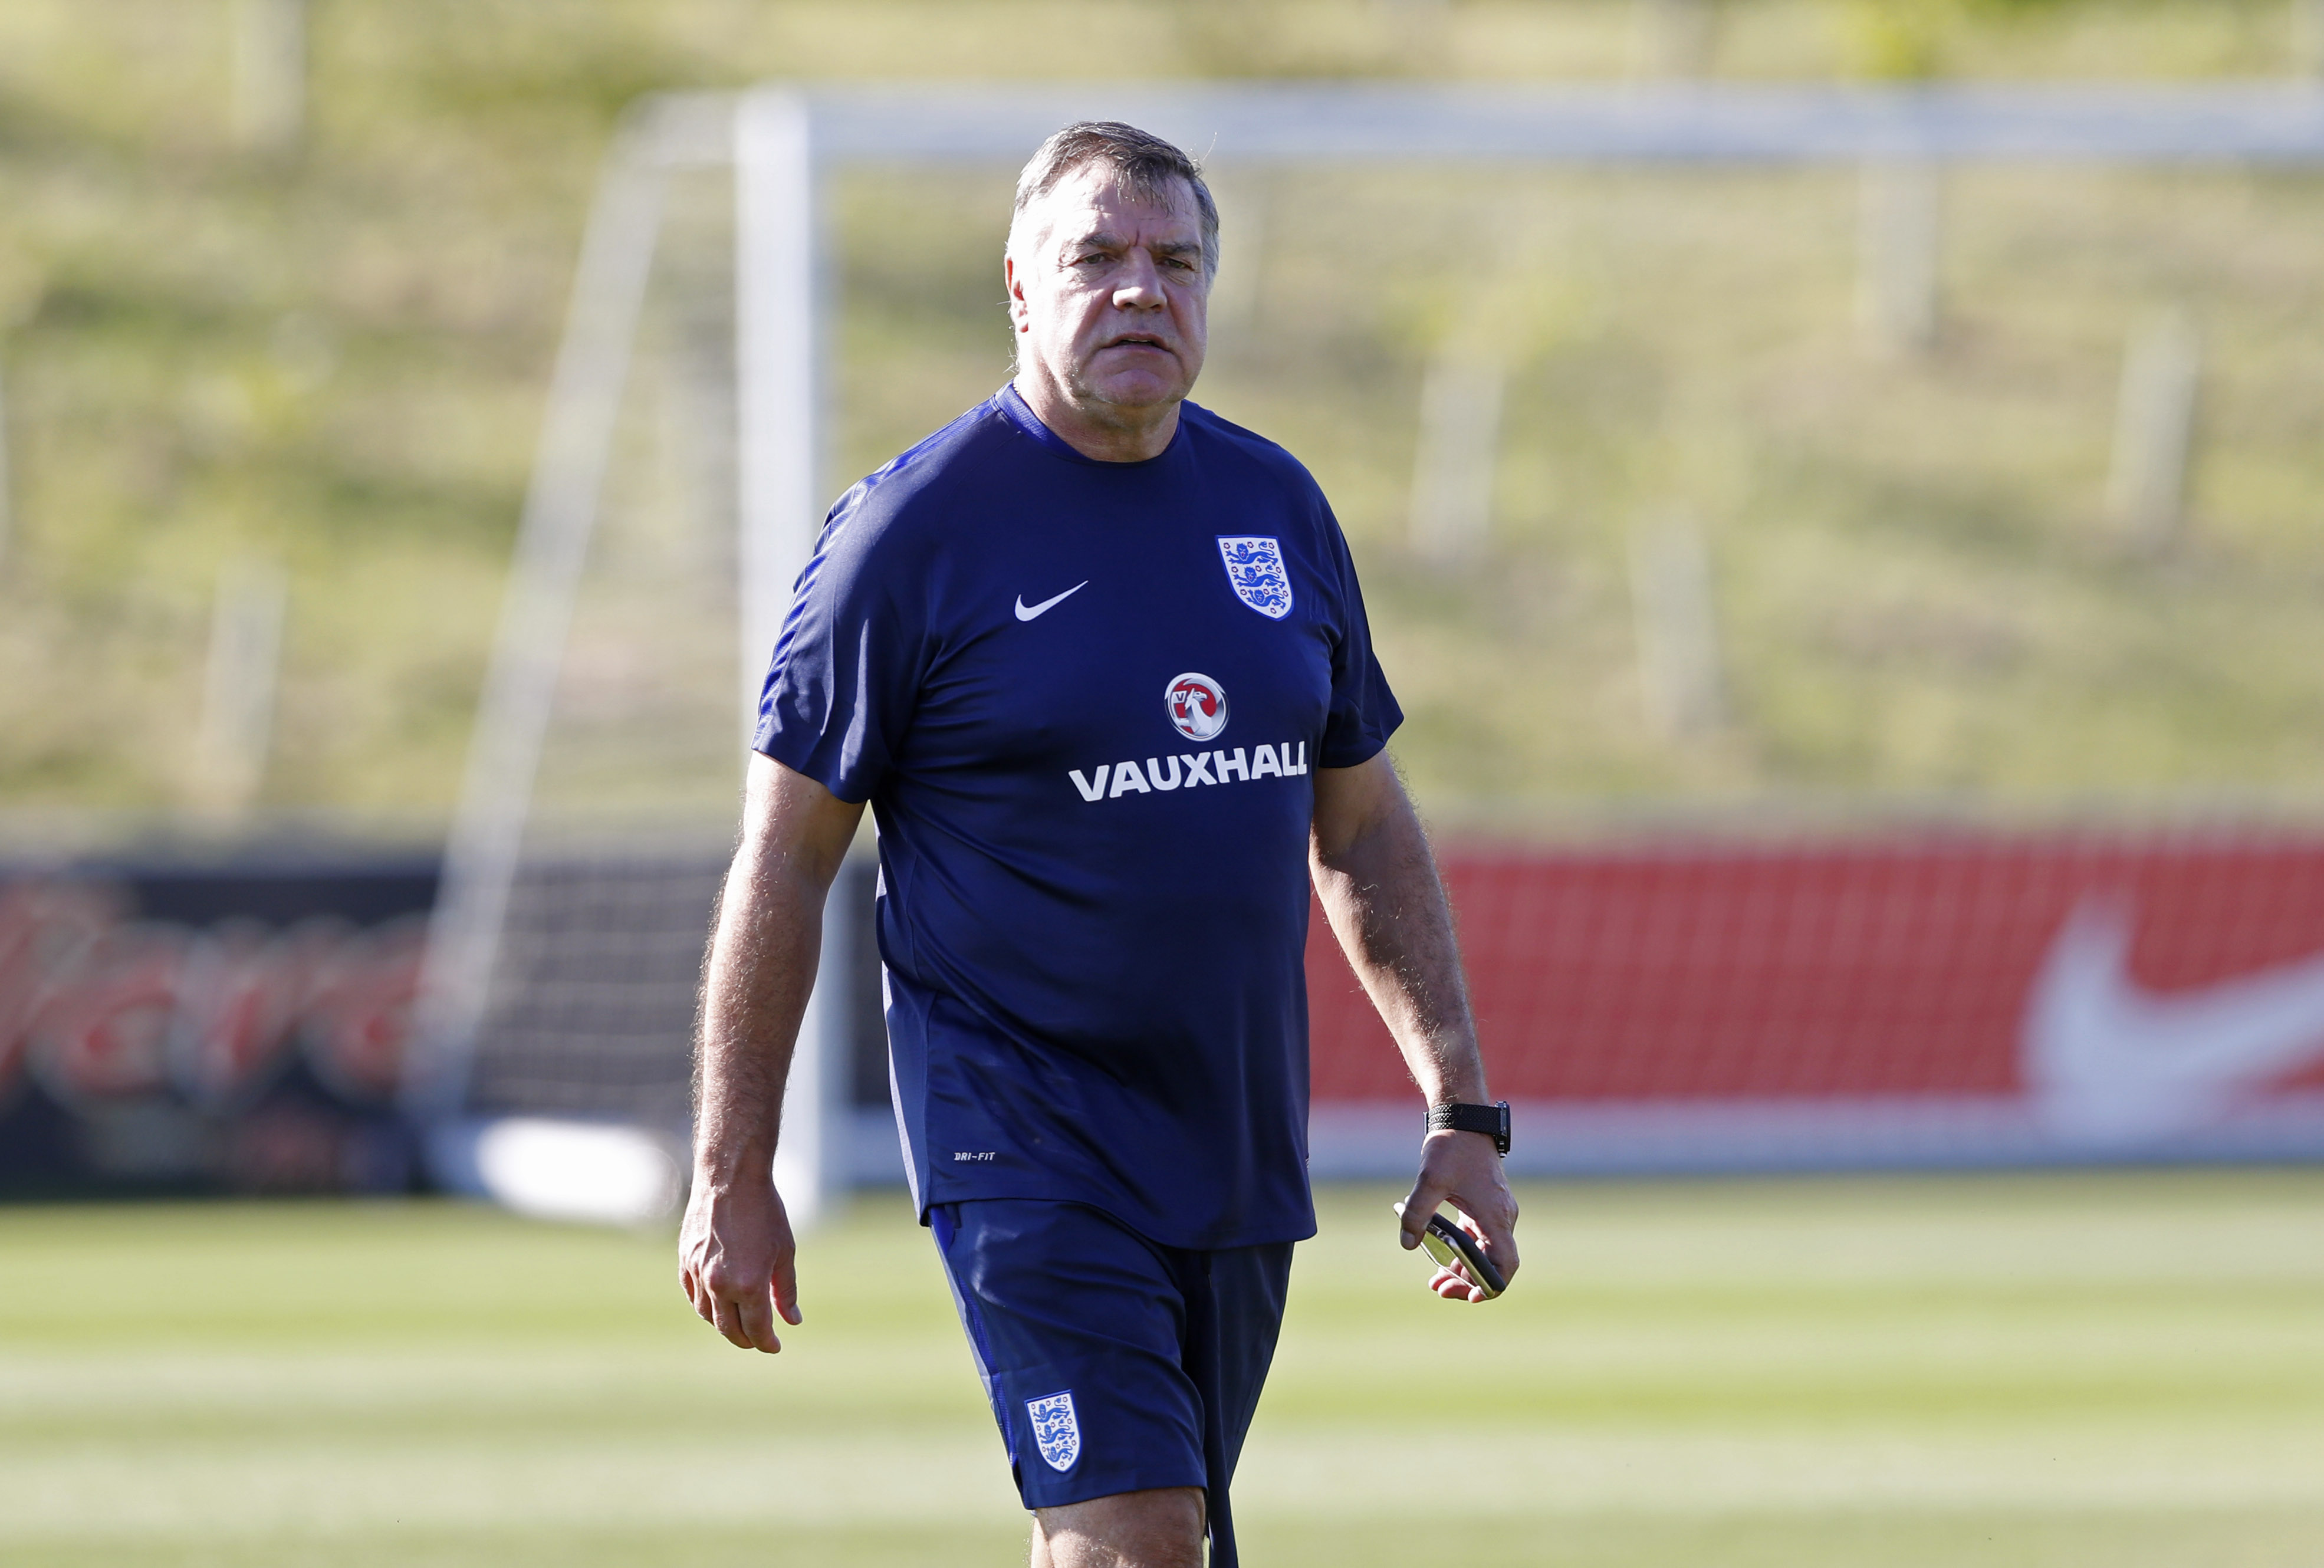 England manager Sam Allardyce watches a training session earlier this week. England faces host Slovakia on Sunday. | REUTERS